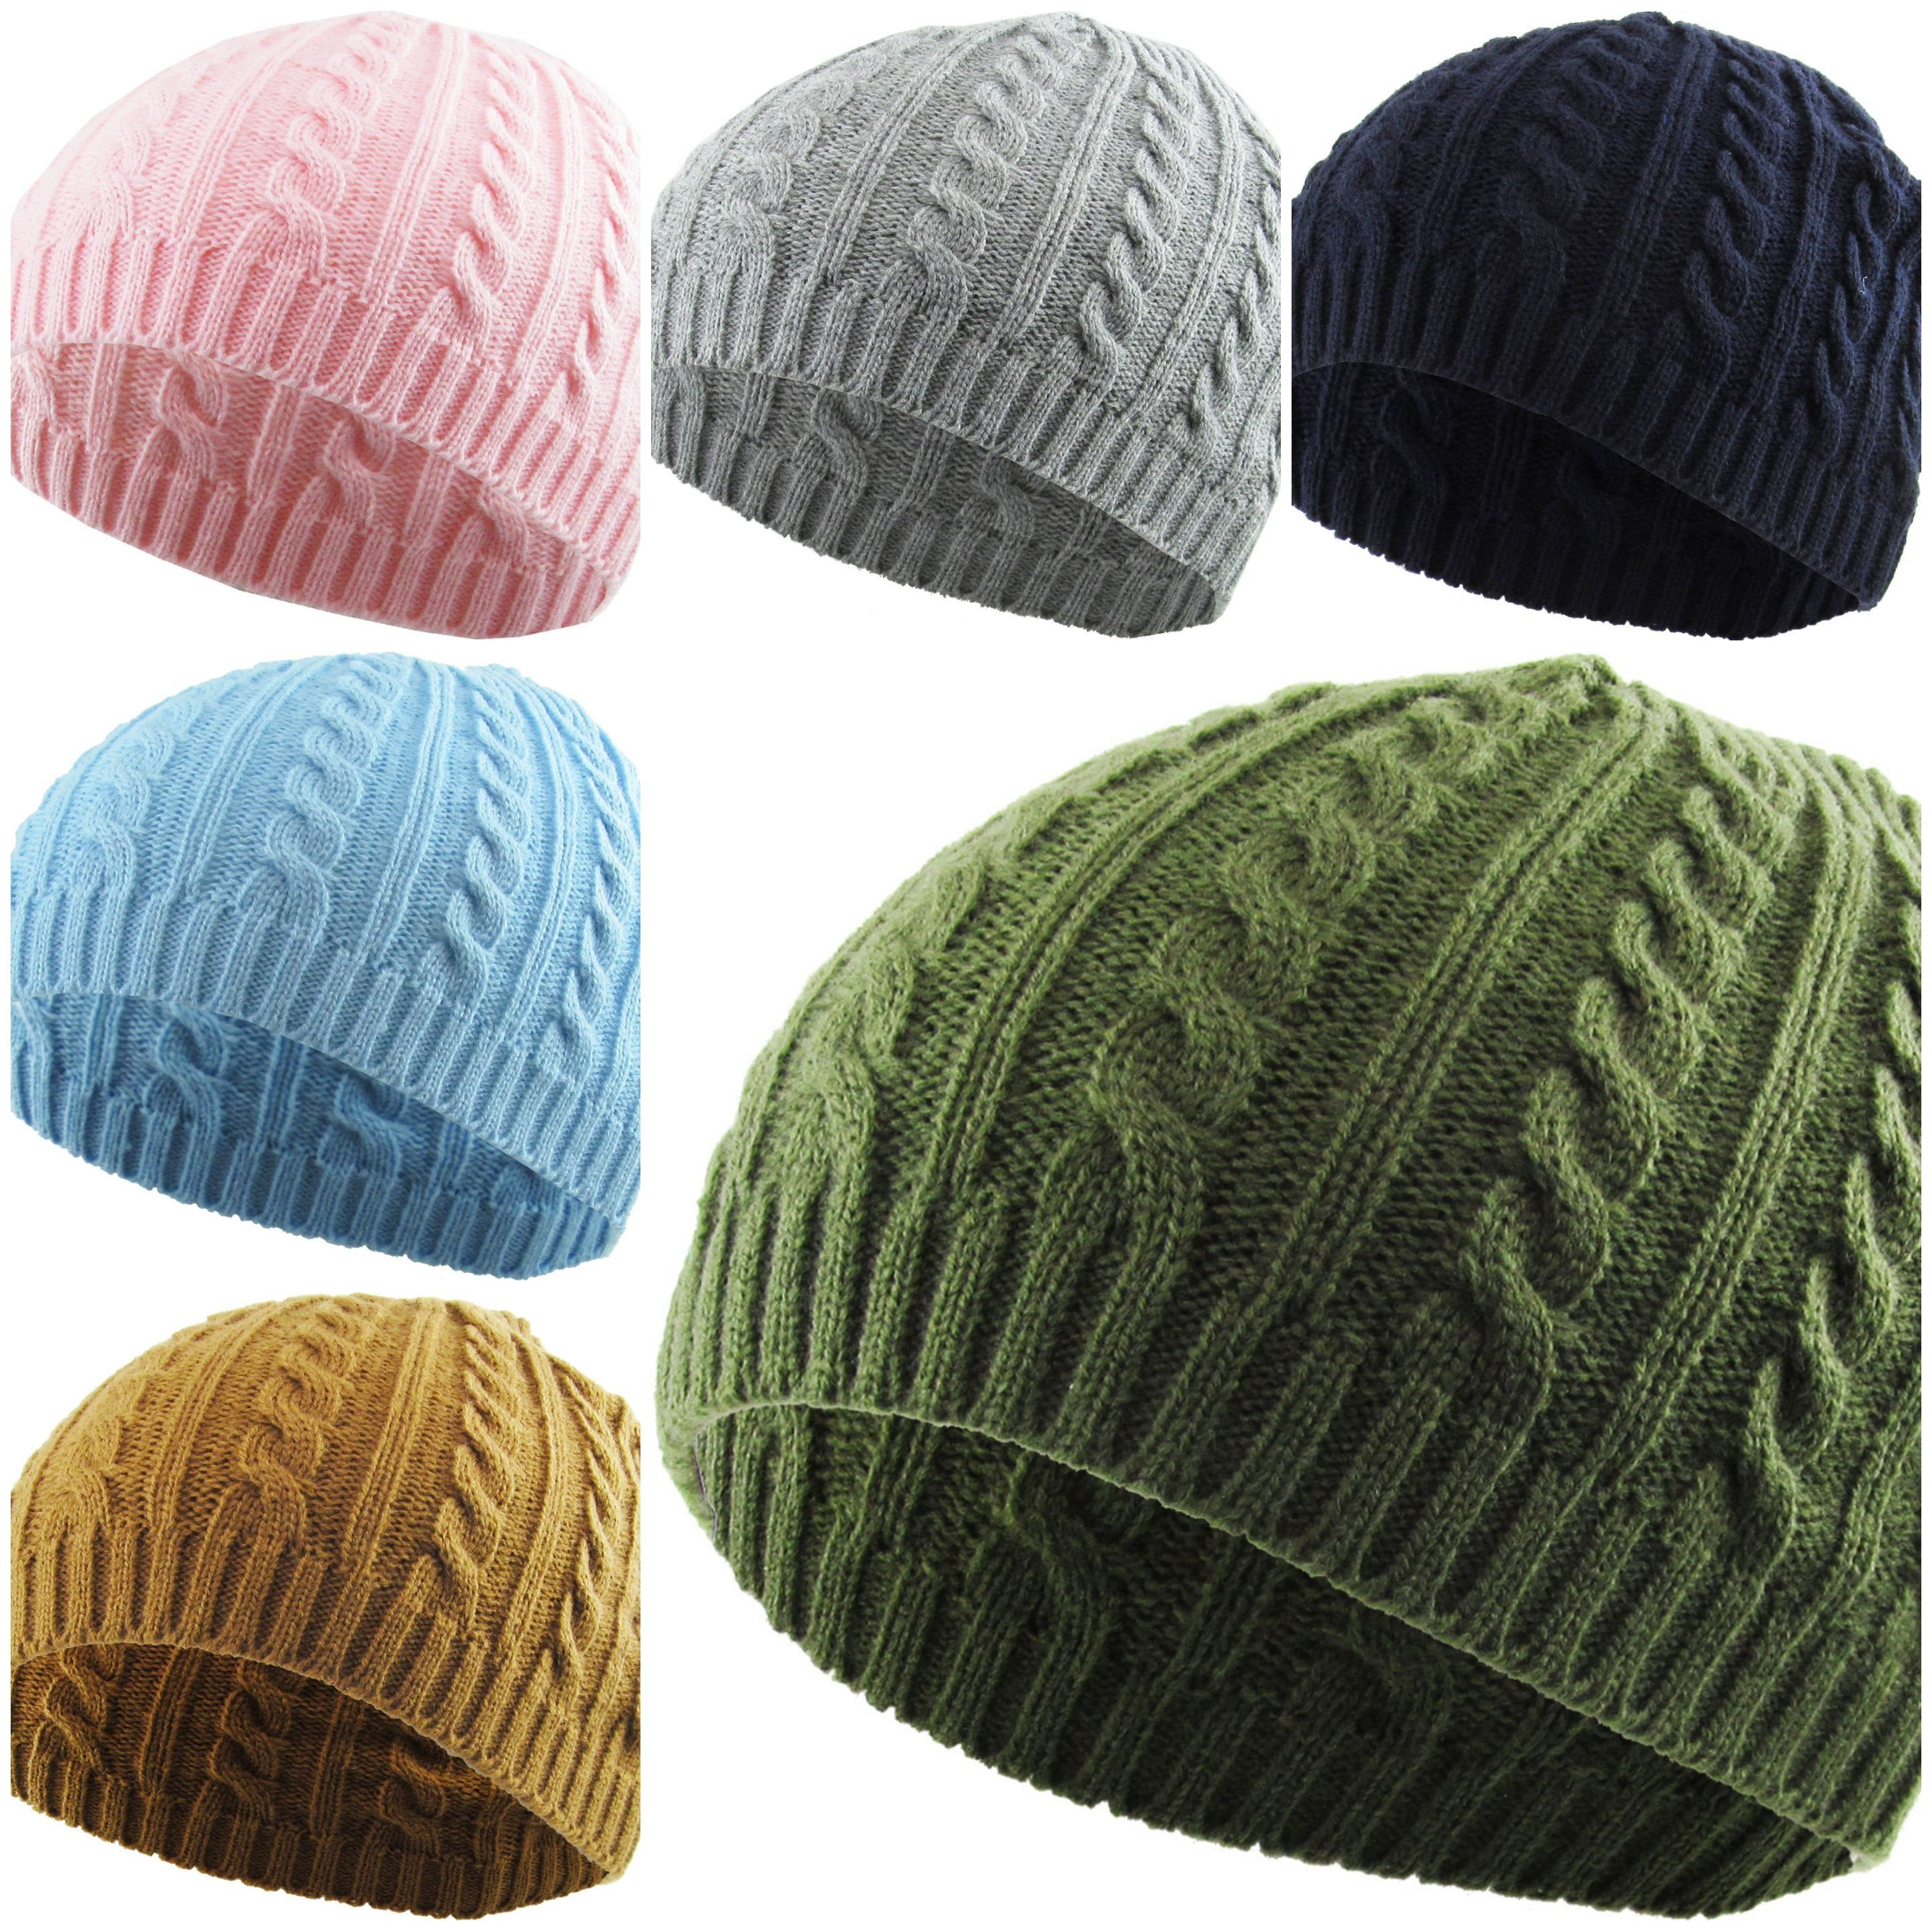 WOMENS CABLE KNIT Beanie - Short Beanie - Skully Hat - Mens Beanie - Beanie Knit Hat - Knitted